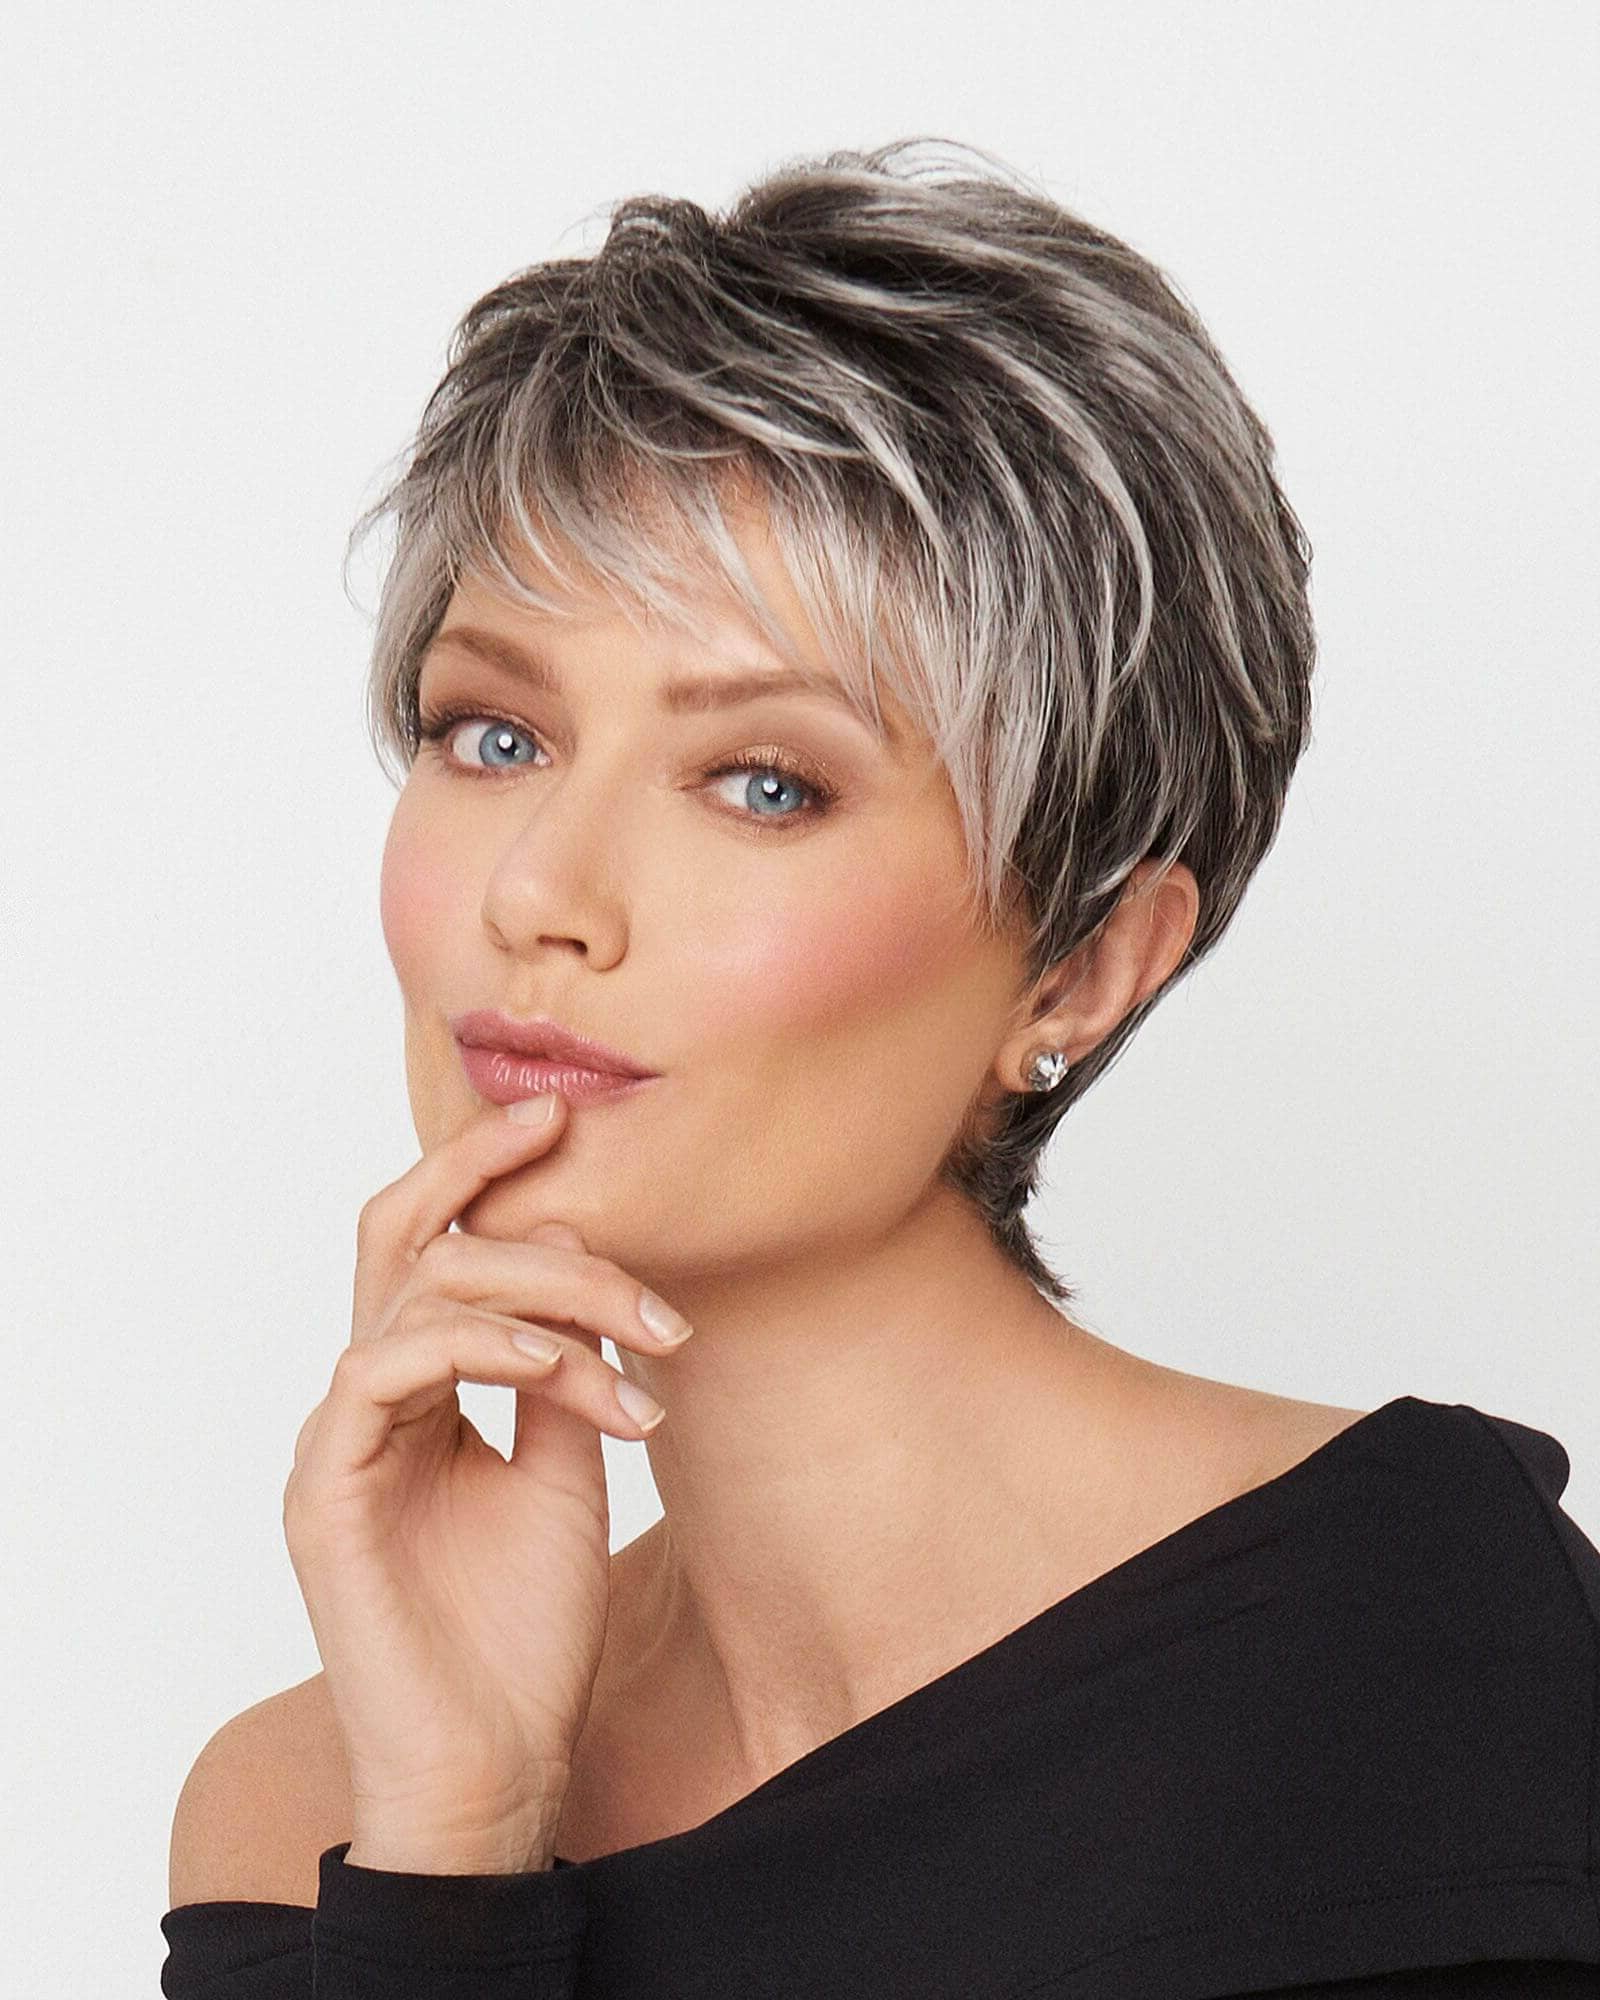 50 Pixie Haircuts You'll See Trending In 2019 With Edgy Ash Blonde Pixie Haircuts (View 18 of 20)